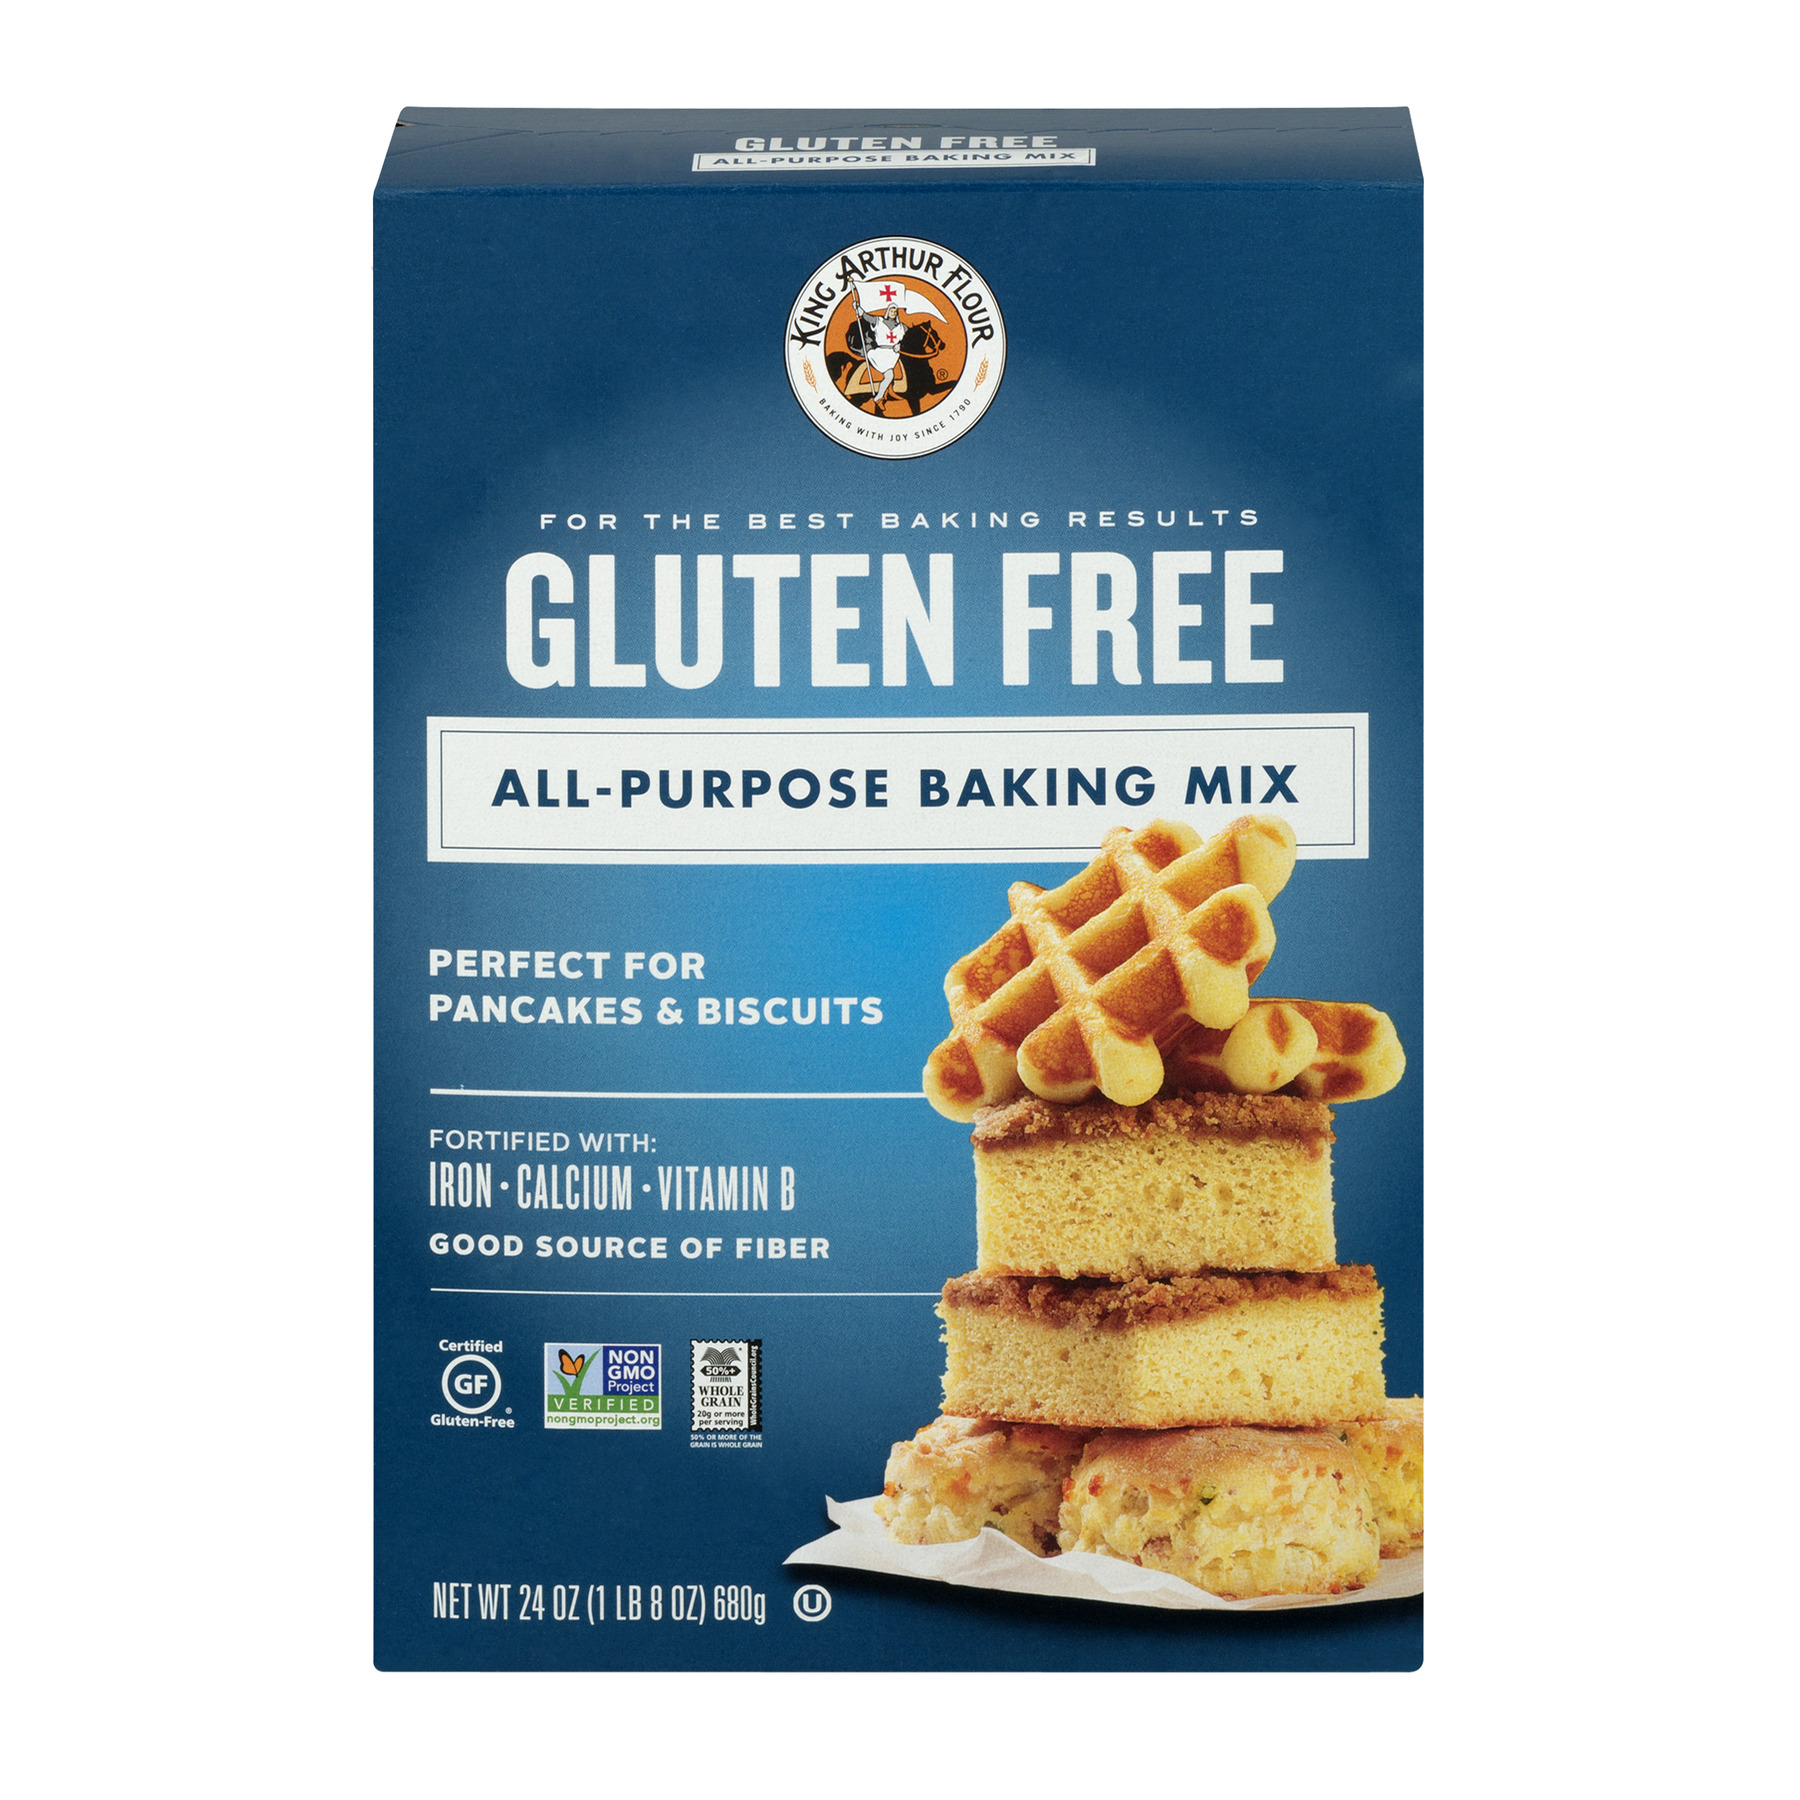 King Arthur Flour All-Purpose Baking Mix Gluten Free, 24.0 OZ